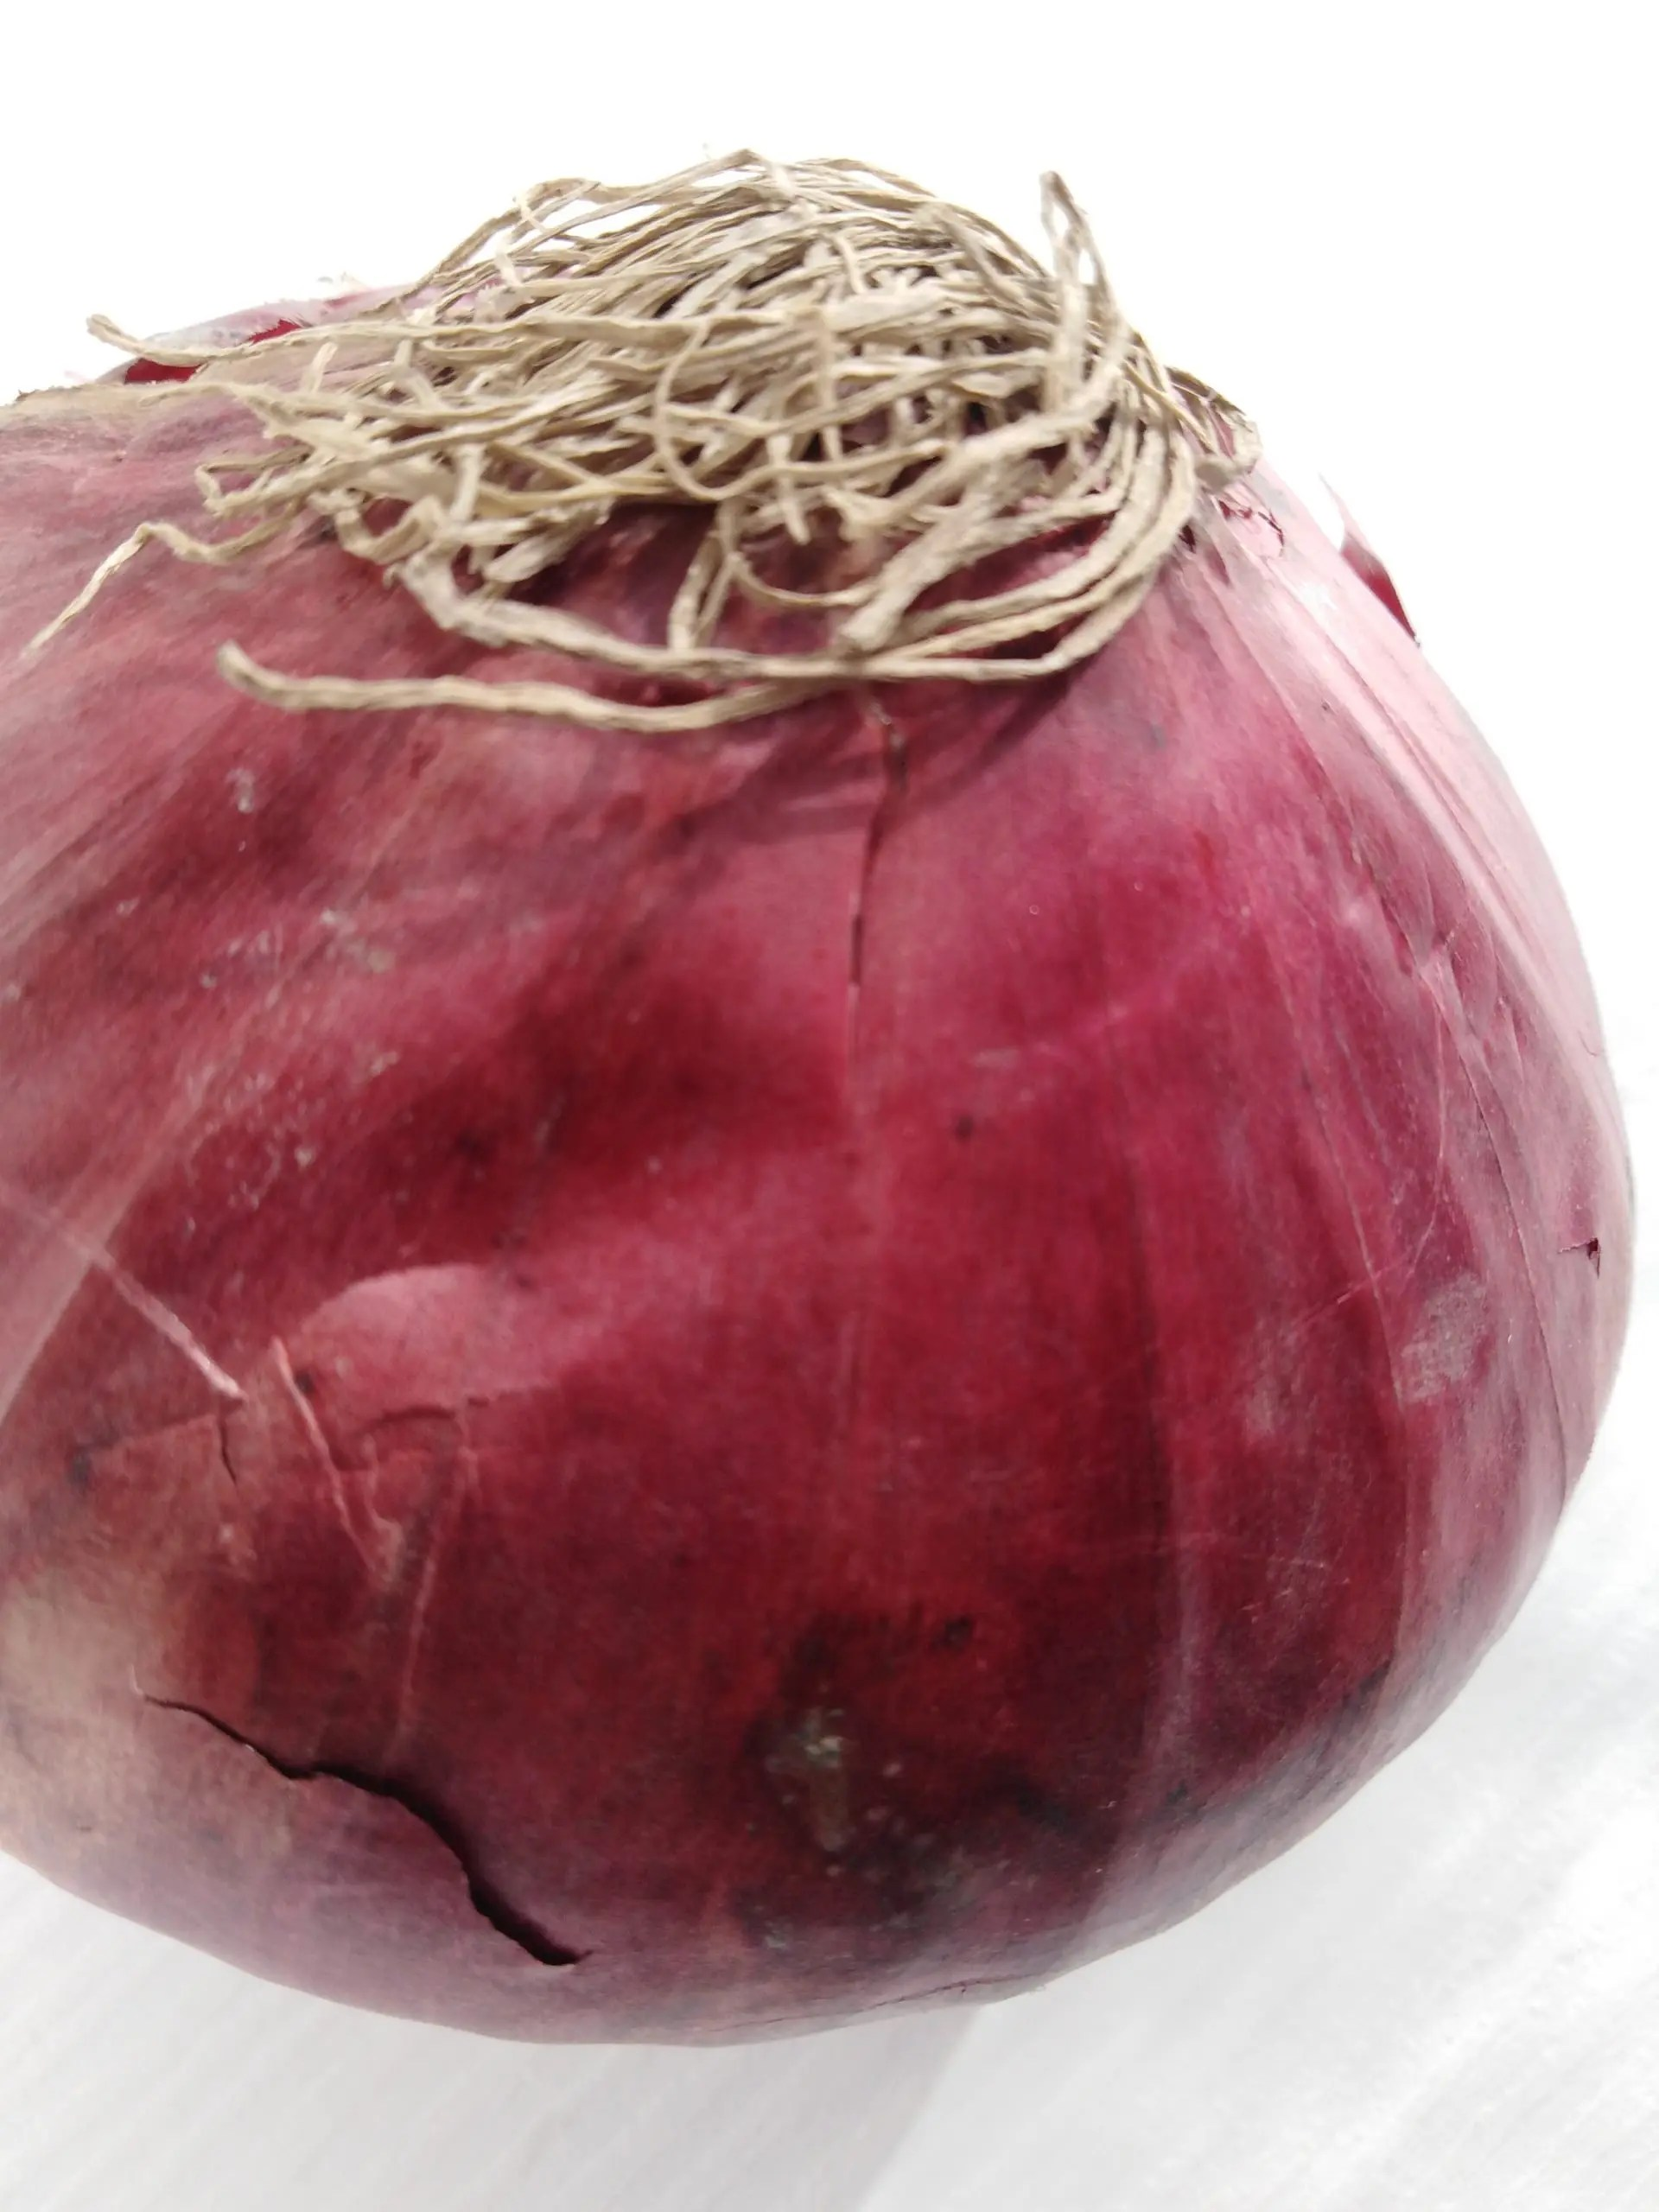 Red onion close-up